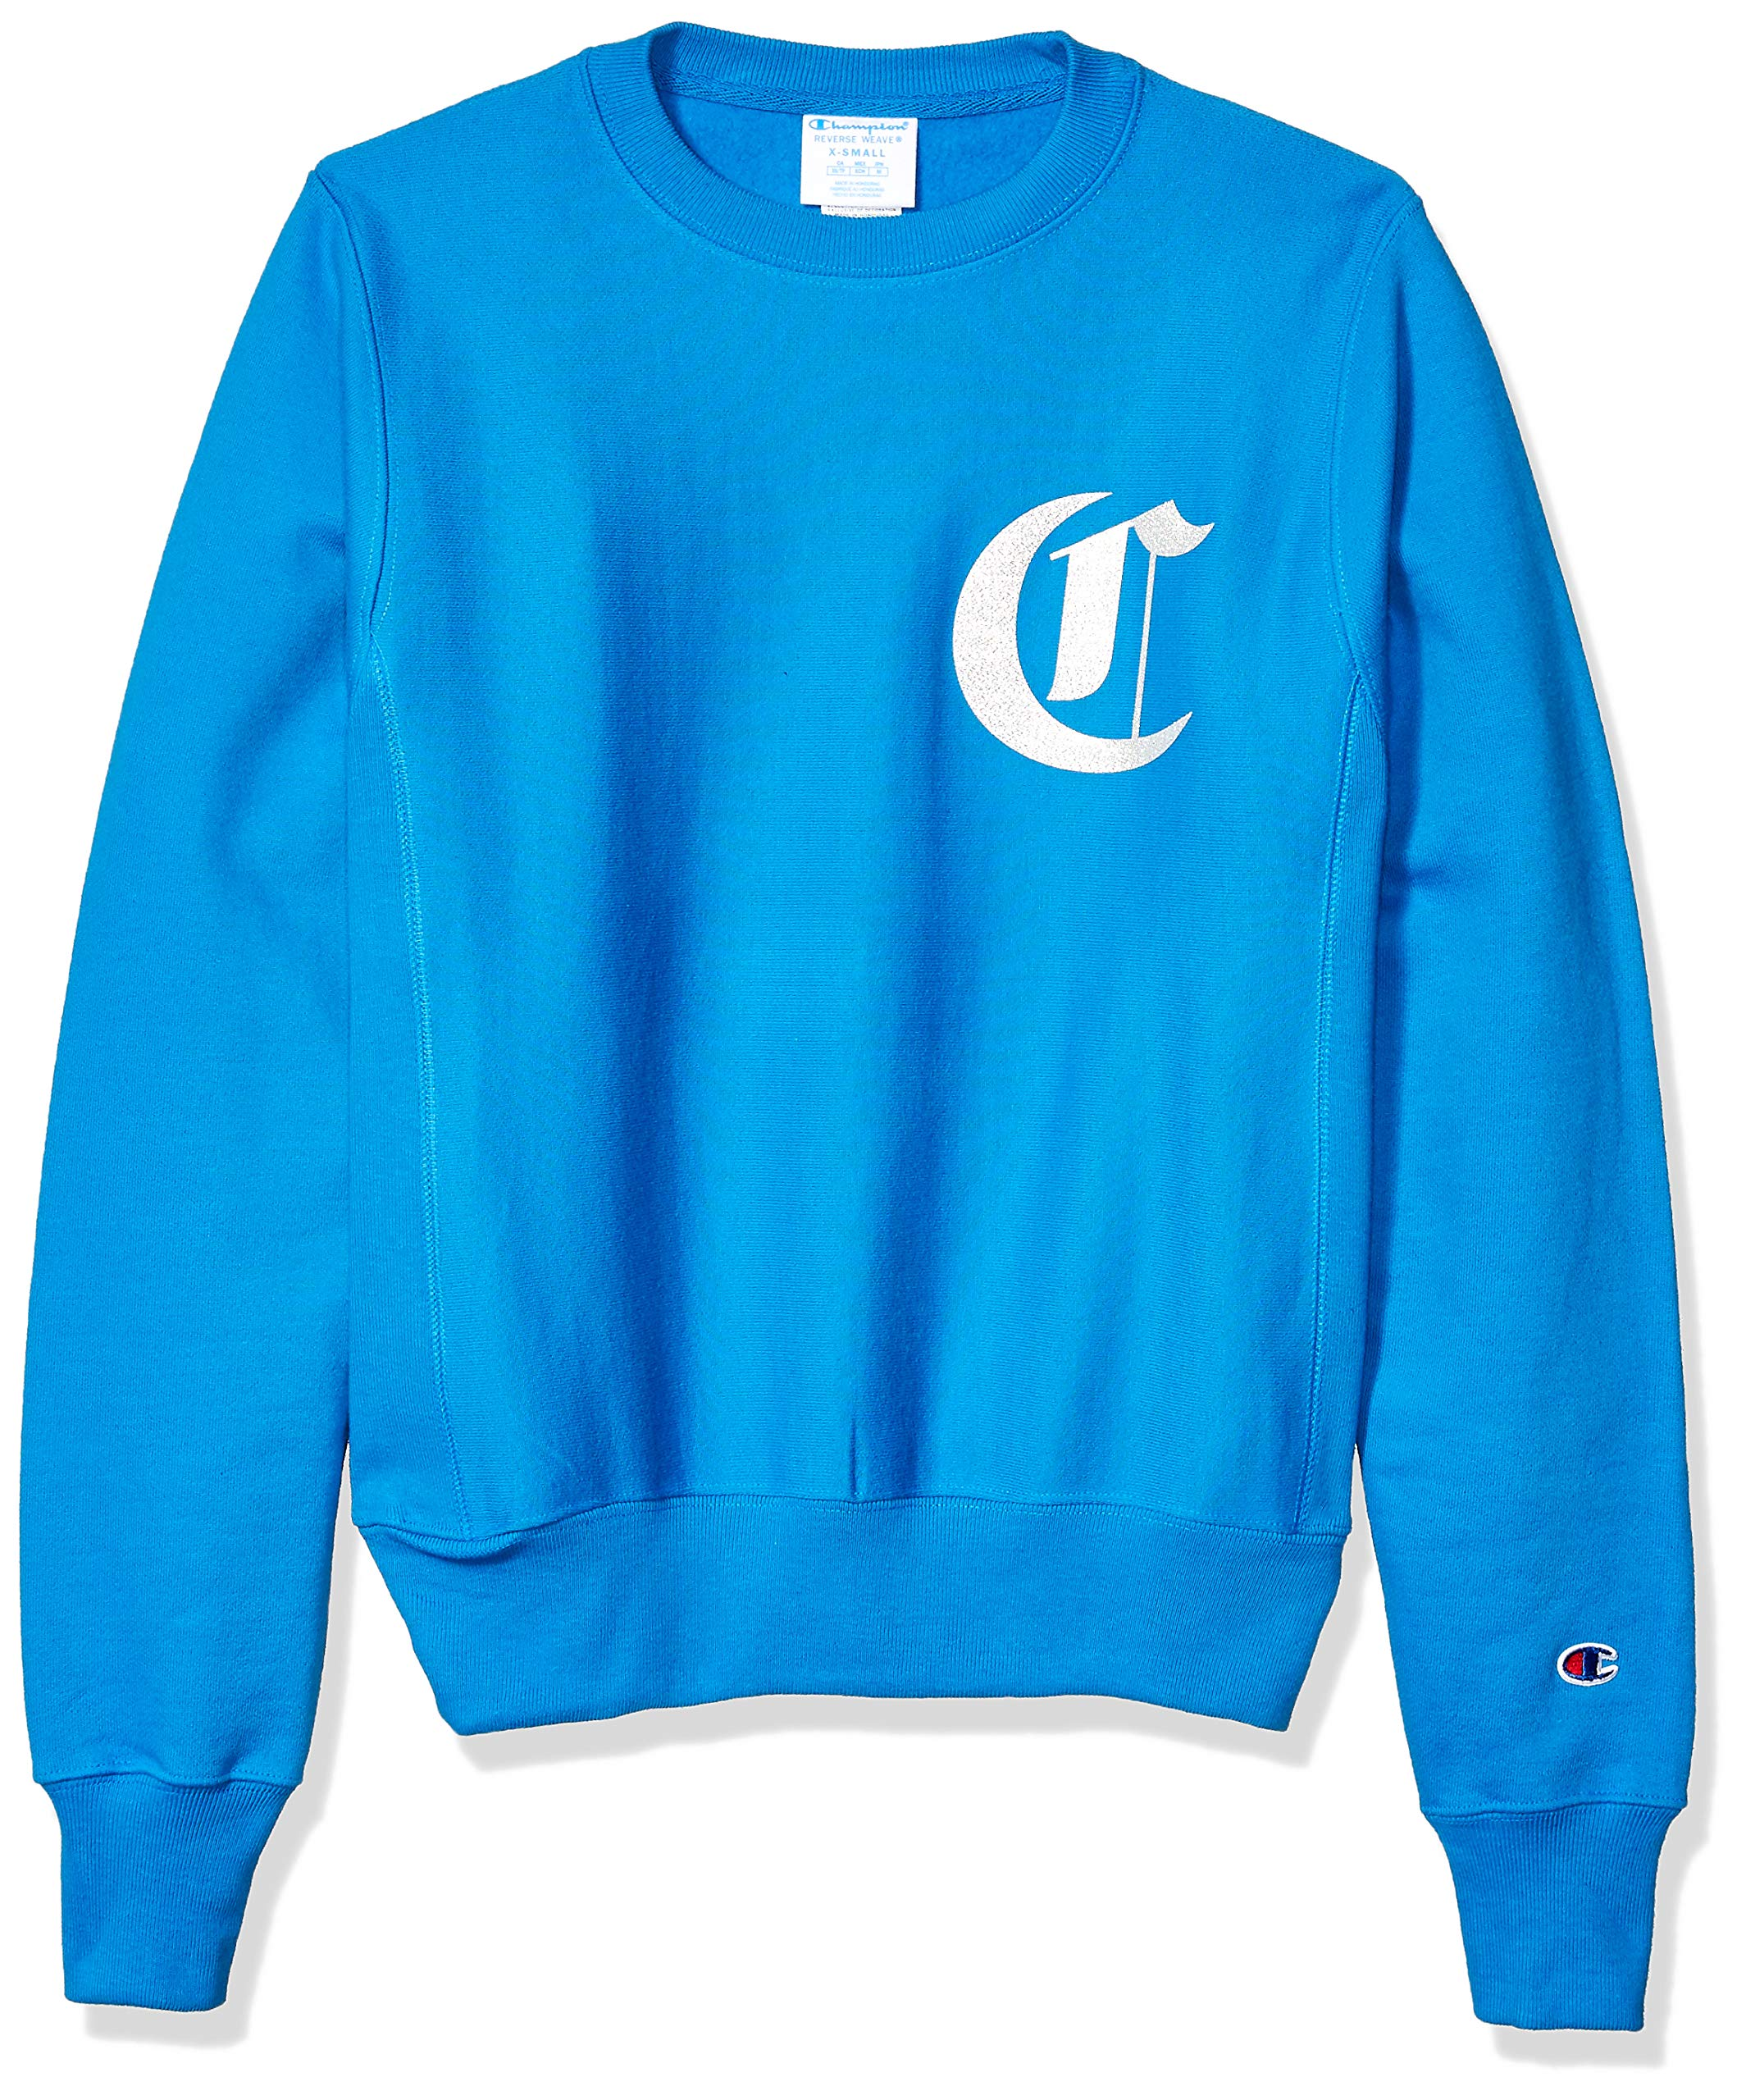 Champion LIFE Men's Reverse Weave Sweatshirt, Running Waves w/Old English Lettering, Large by Champion LIFE